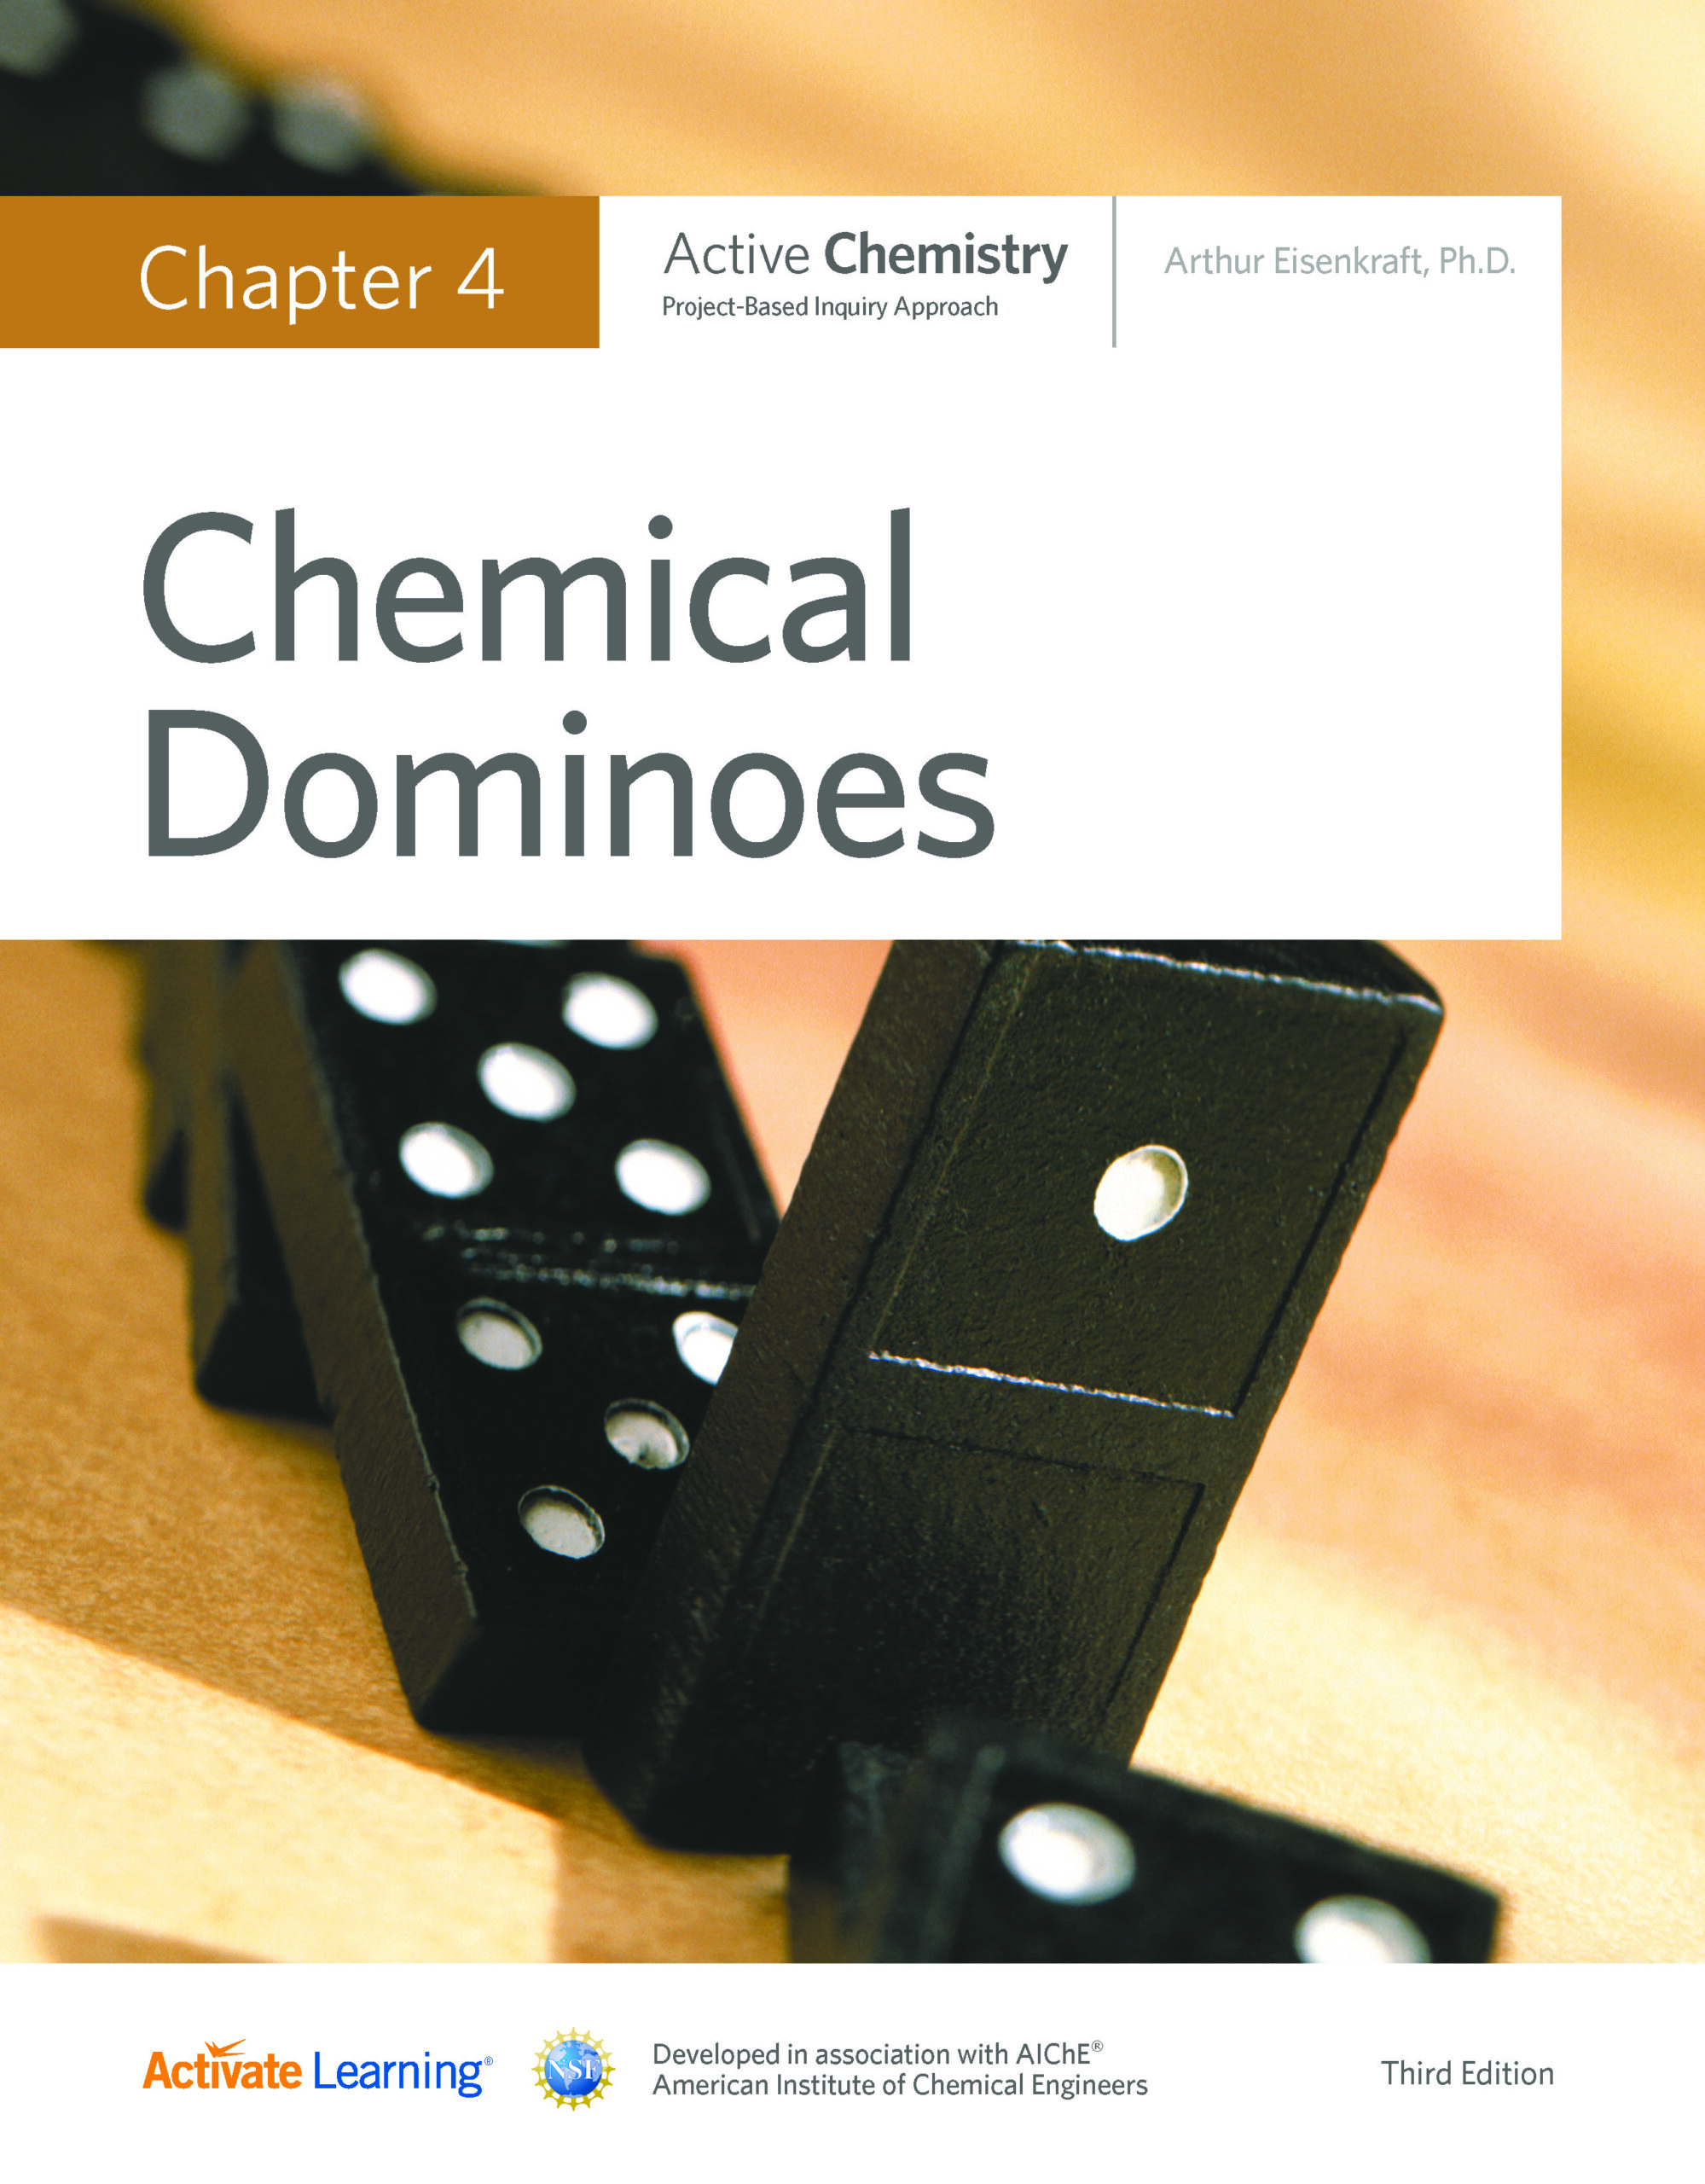 AC_3rdEd_4_ChemicalDominoes_cover